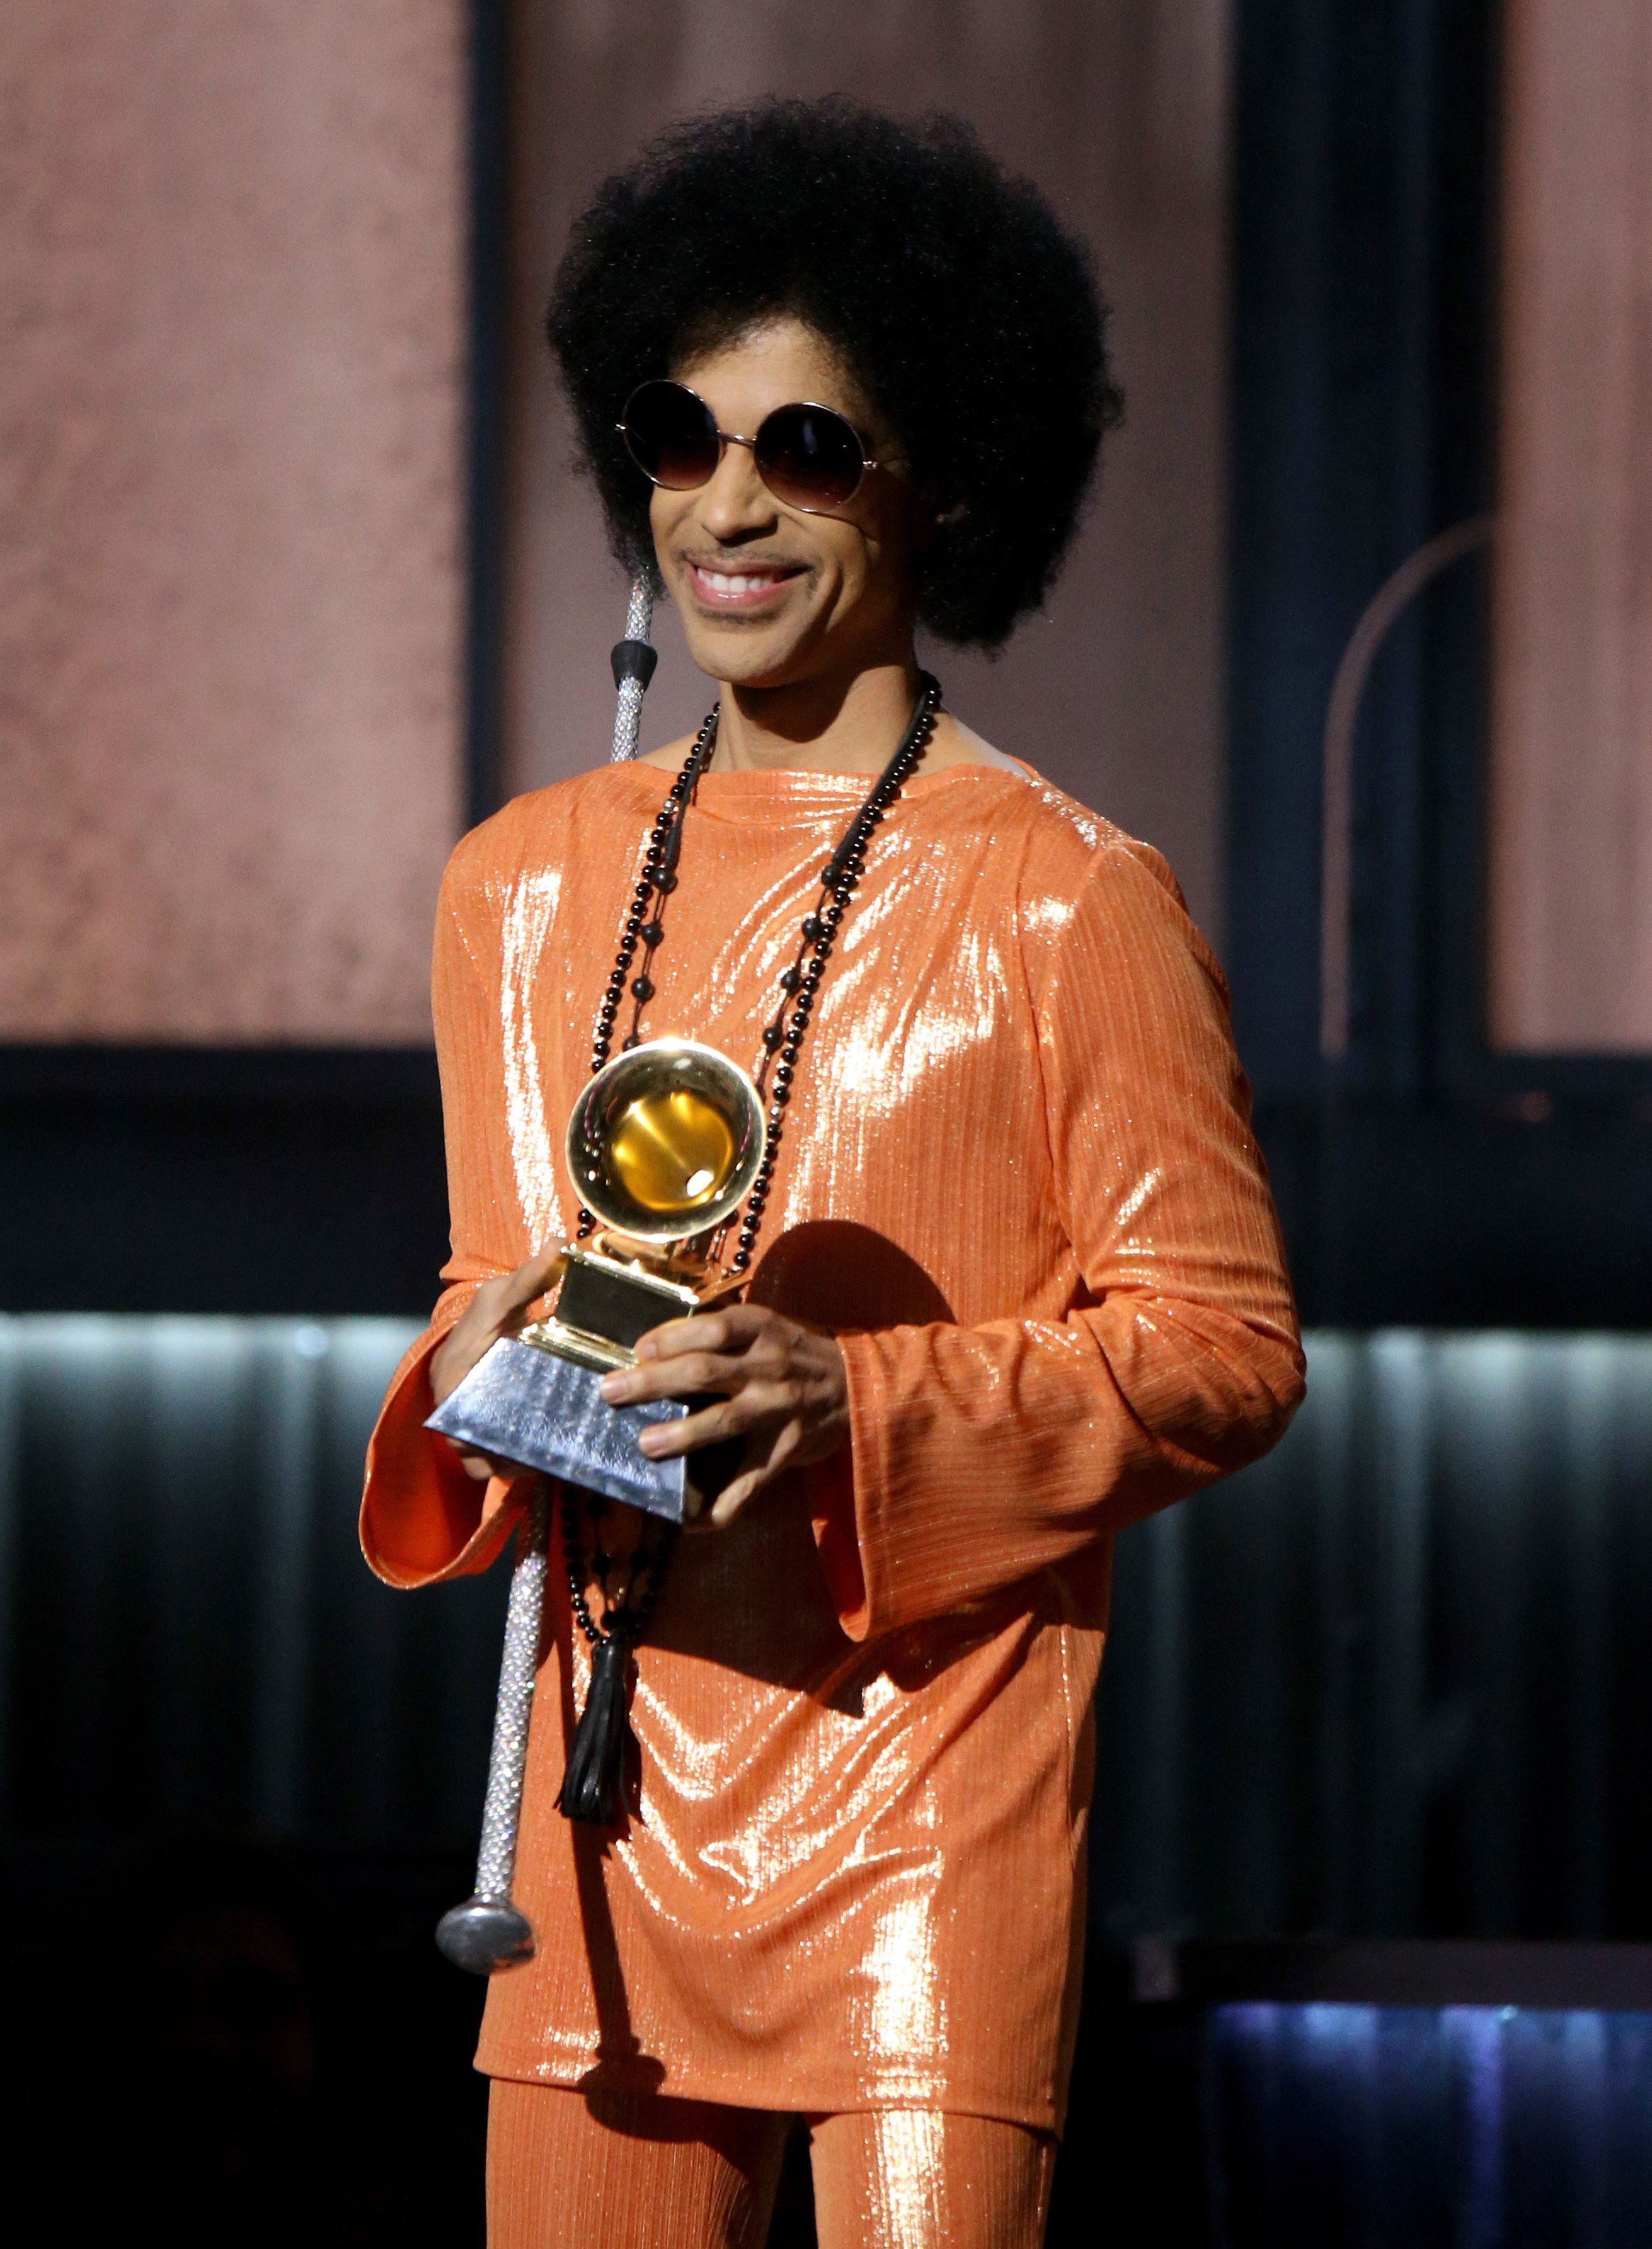 Prince speaks onstage during the Grammy Awards in 2015 in Los